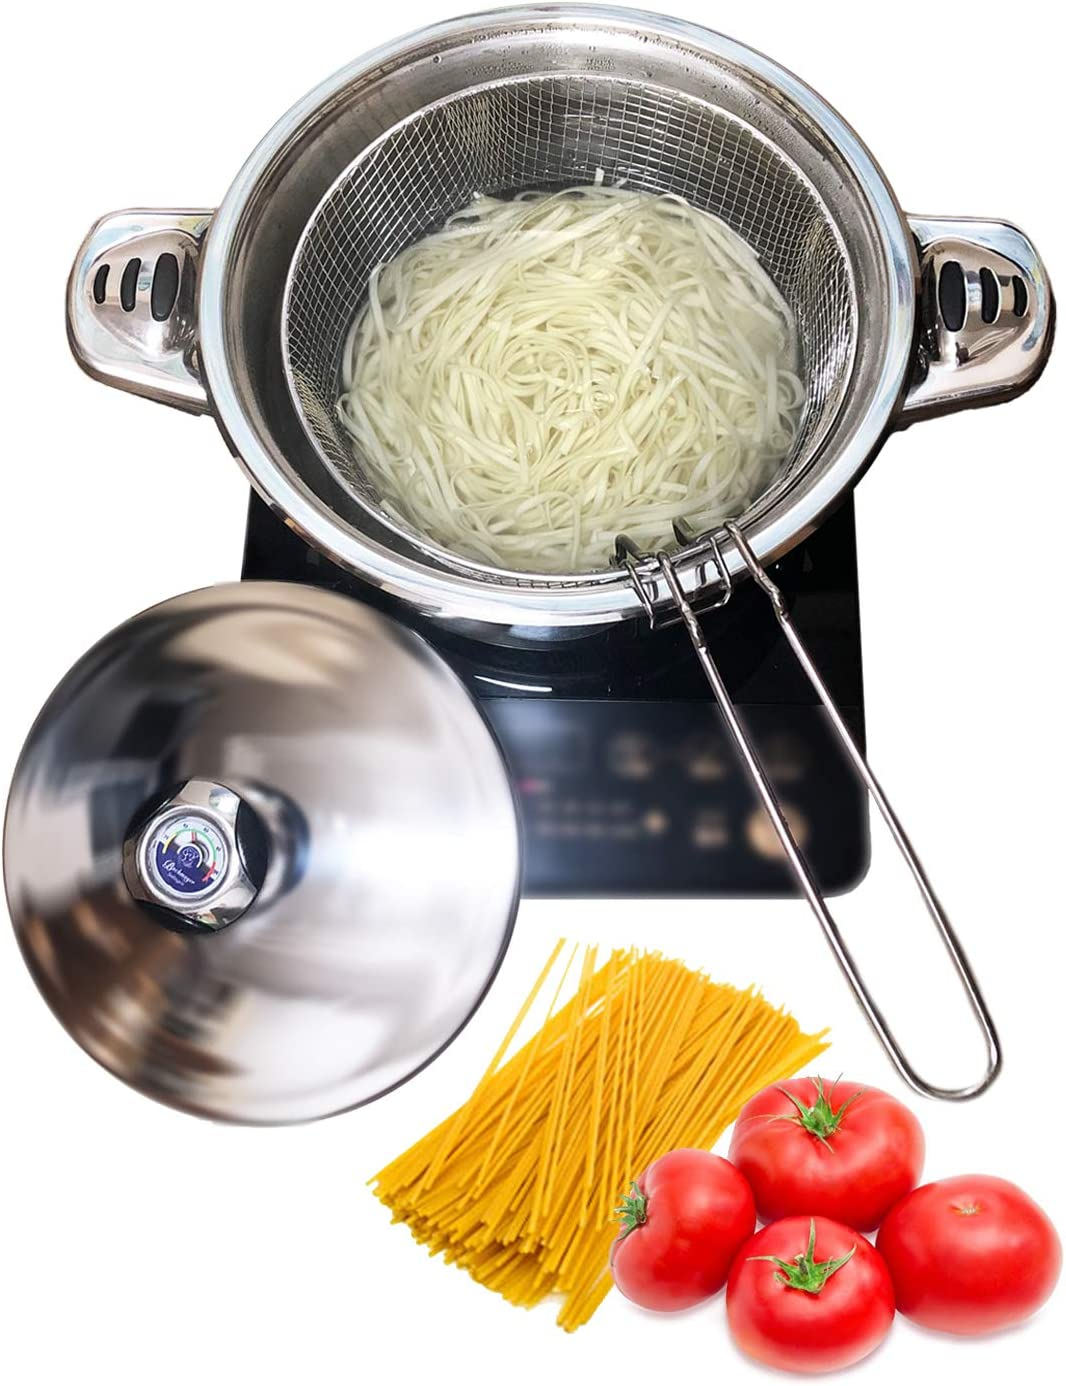 Stainless Steel Tri-Ply Base Pasta Cooker,Multipots With Draining Steamer Basket And Lid (6QT pasta pot)